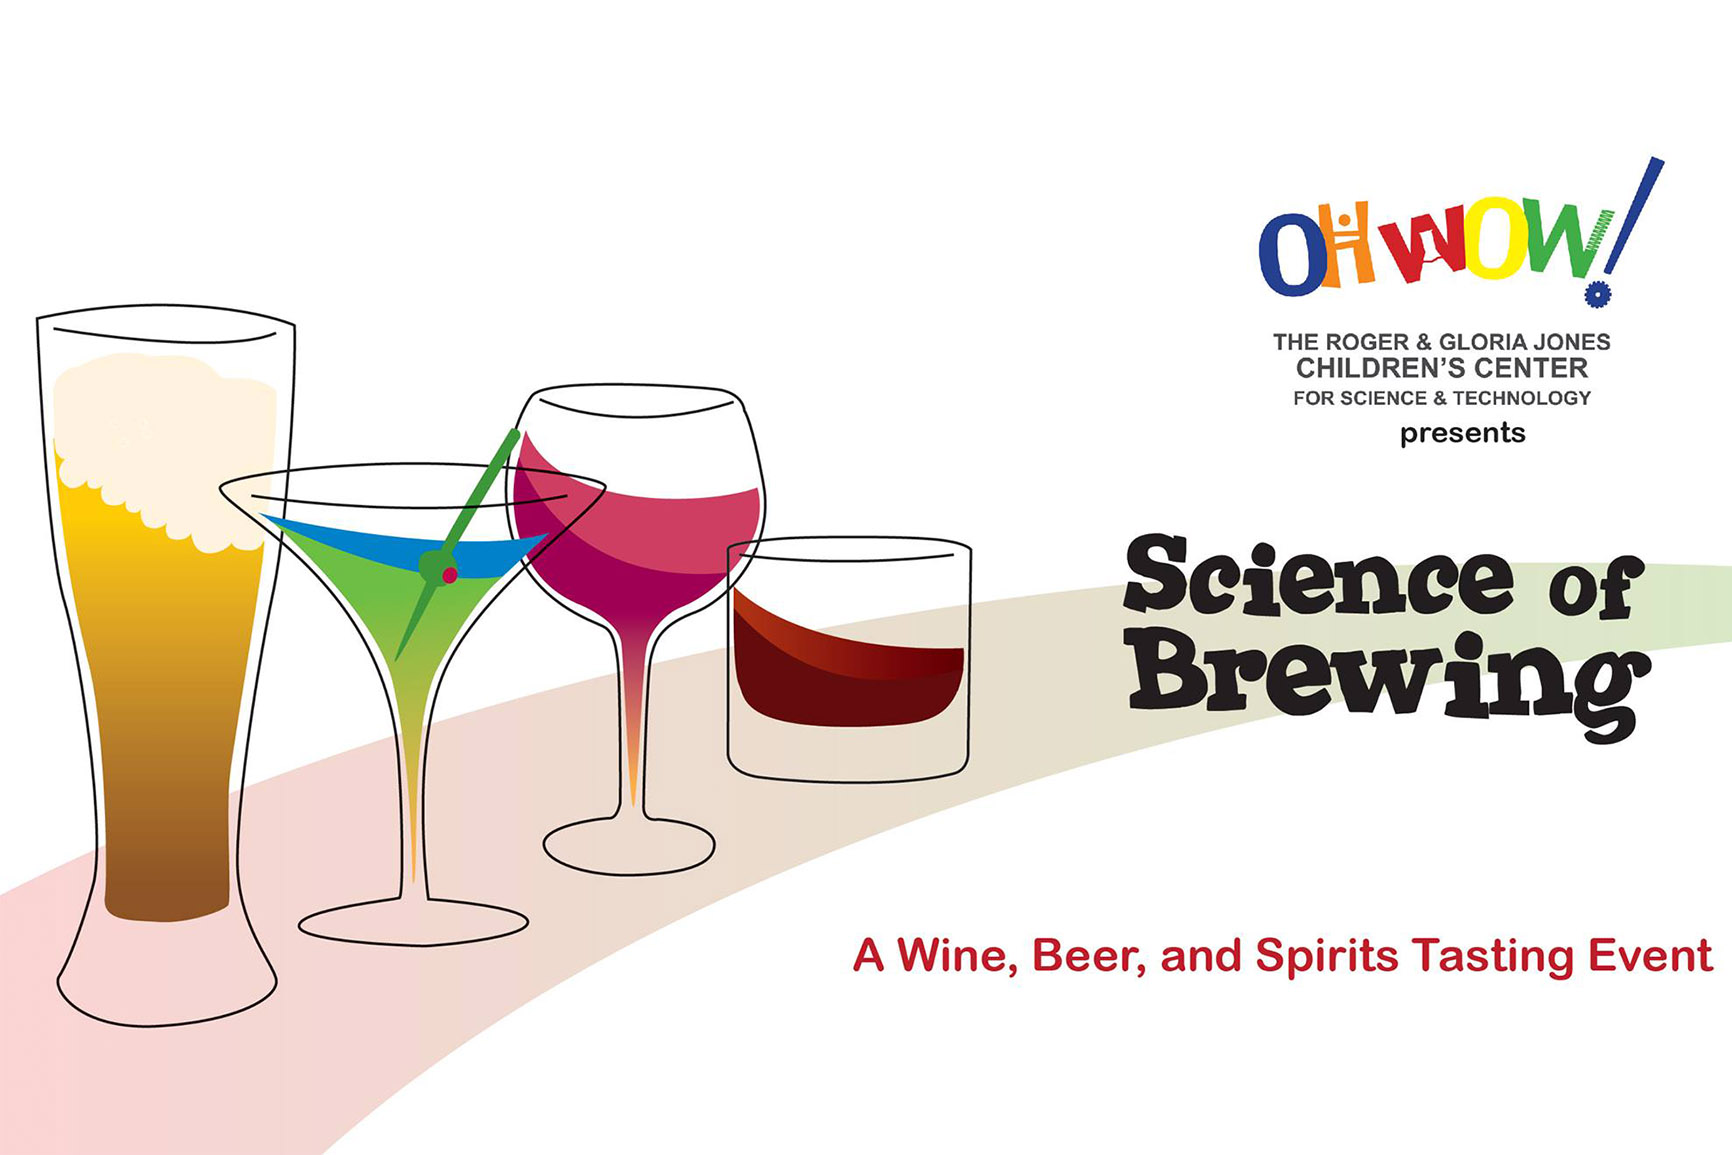 Science of Brewing